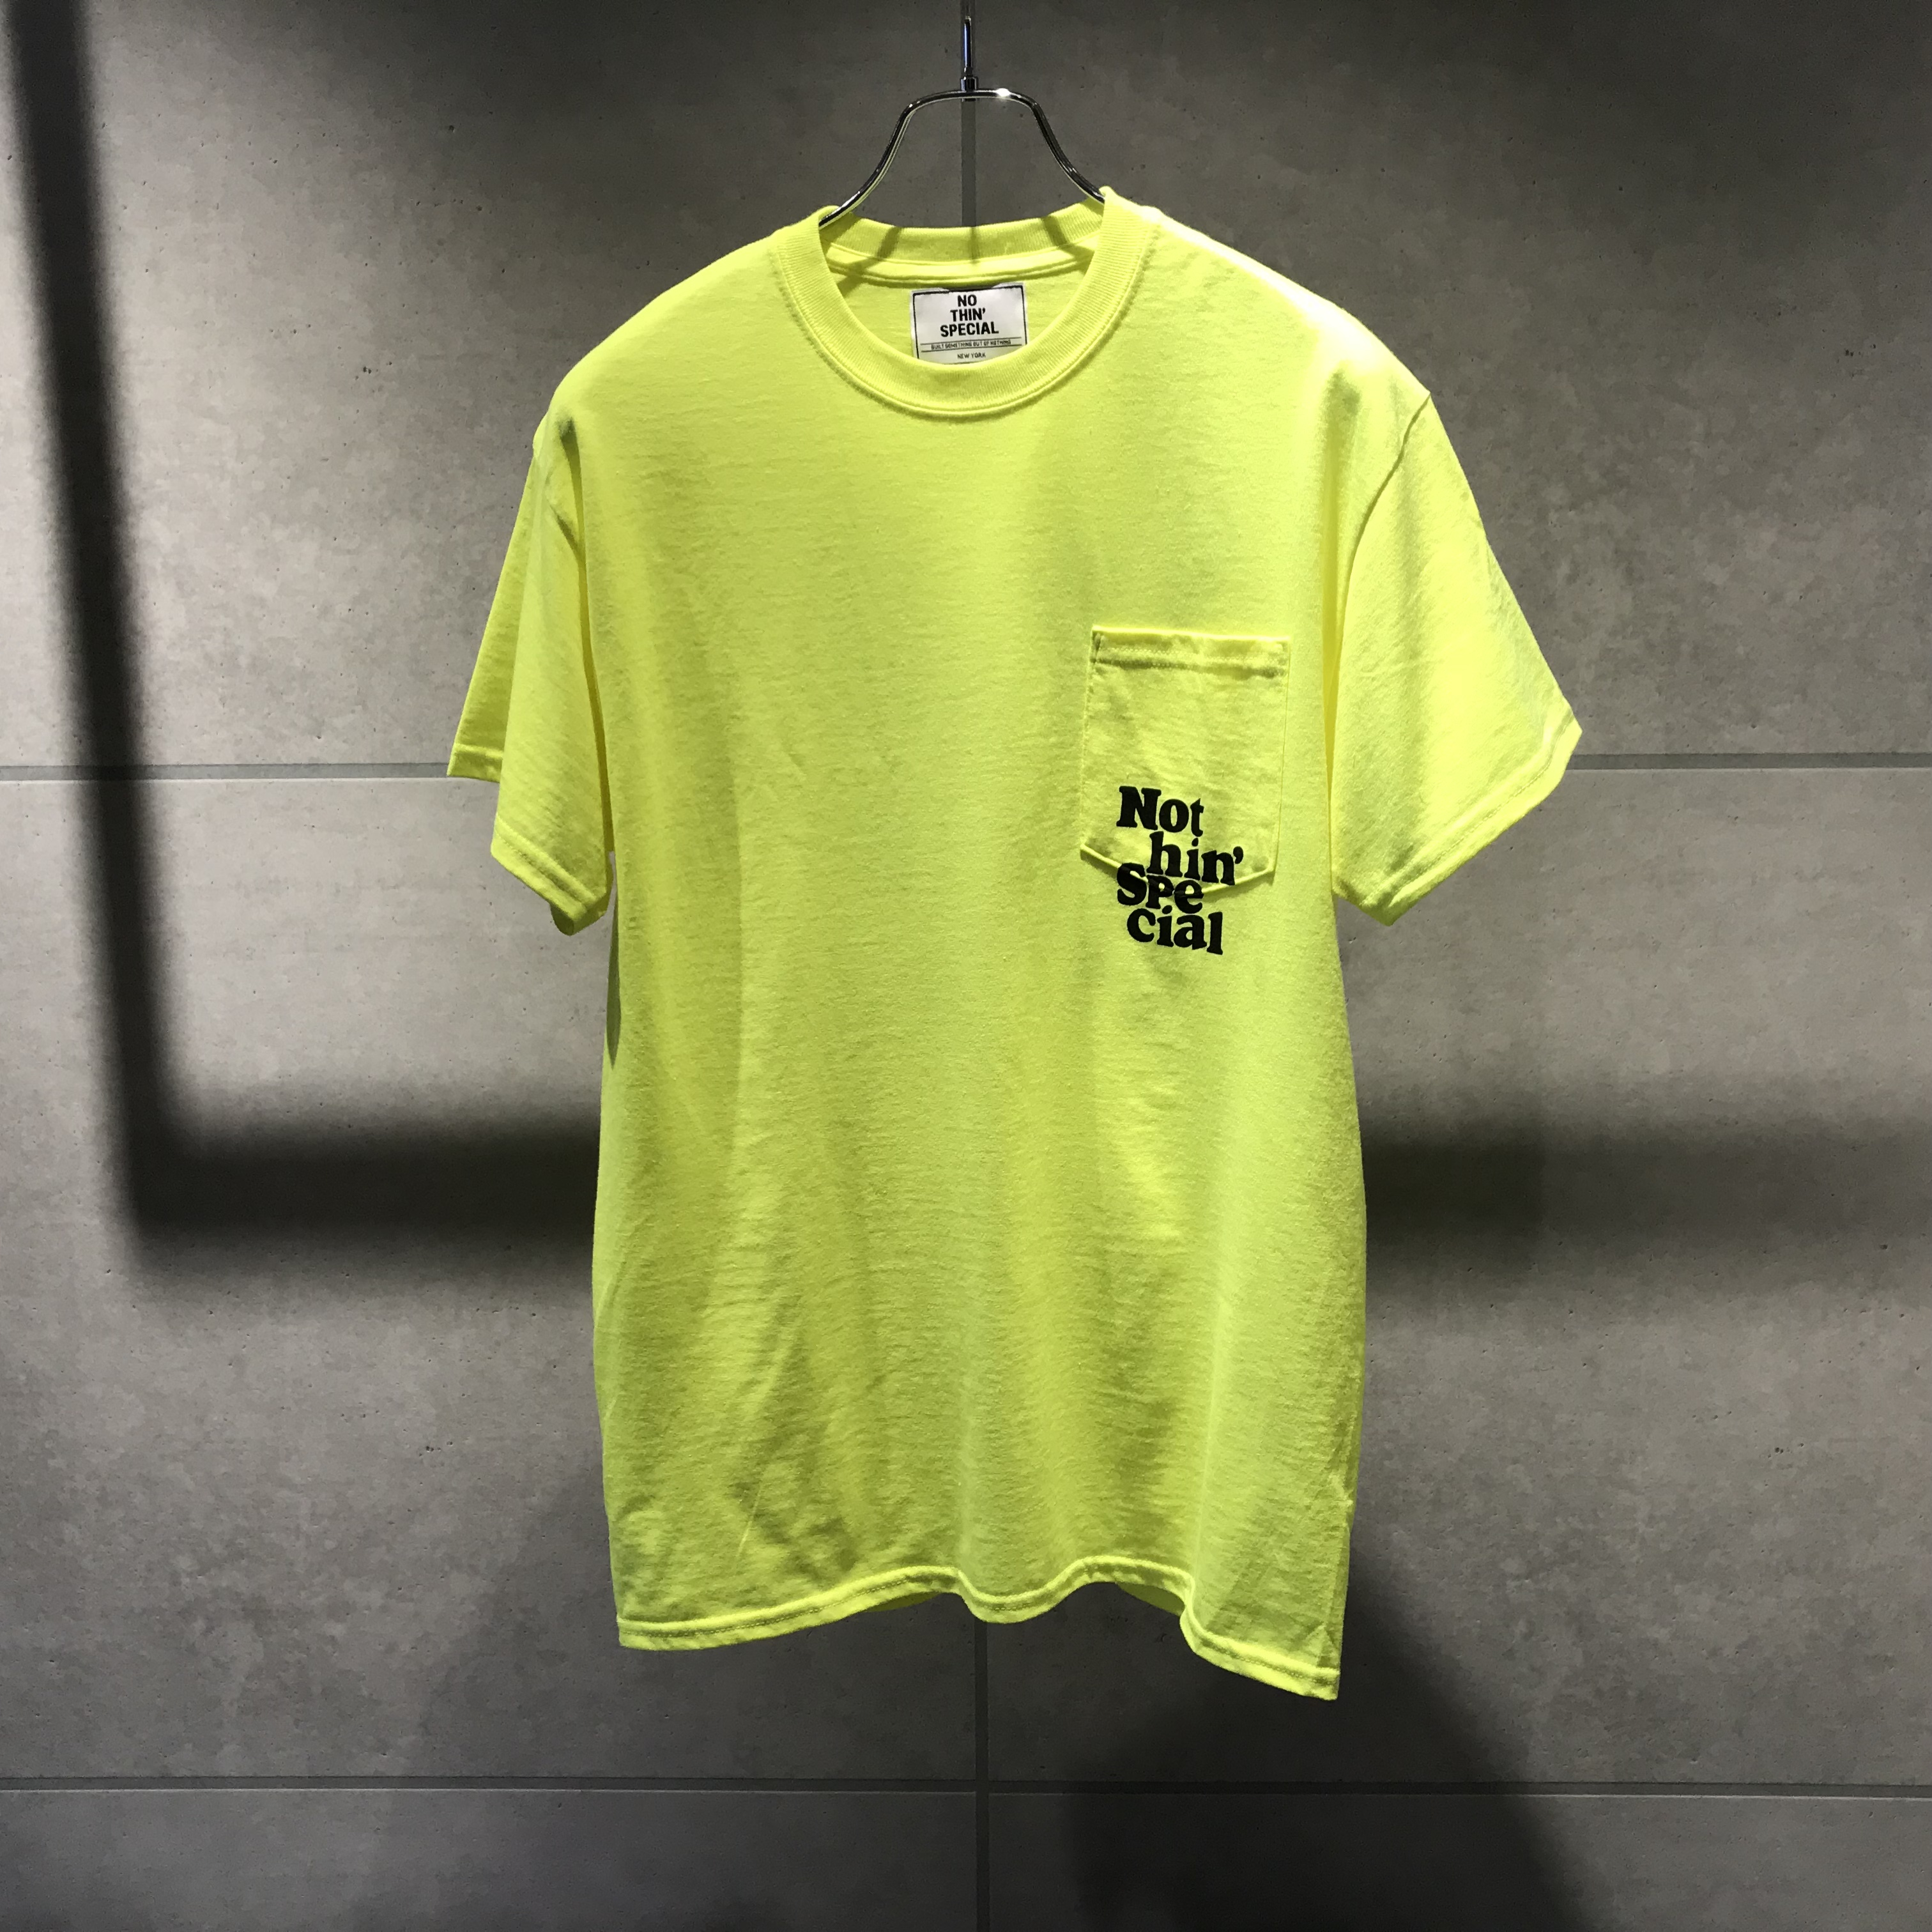 NOTHIN'SPECIAL DON'T BUY THE HYPE POCKET TEE / SAFETY YELLOW x BLACK